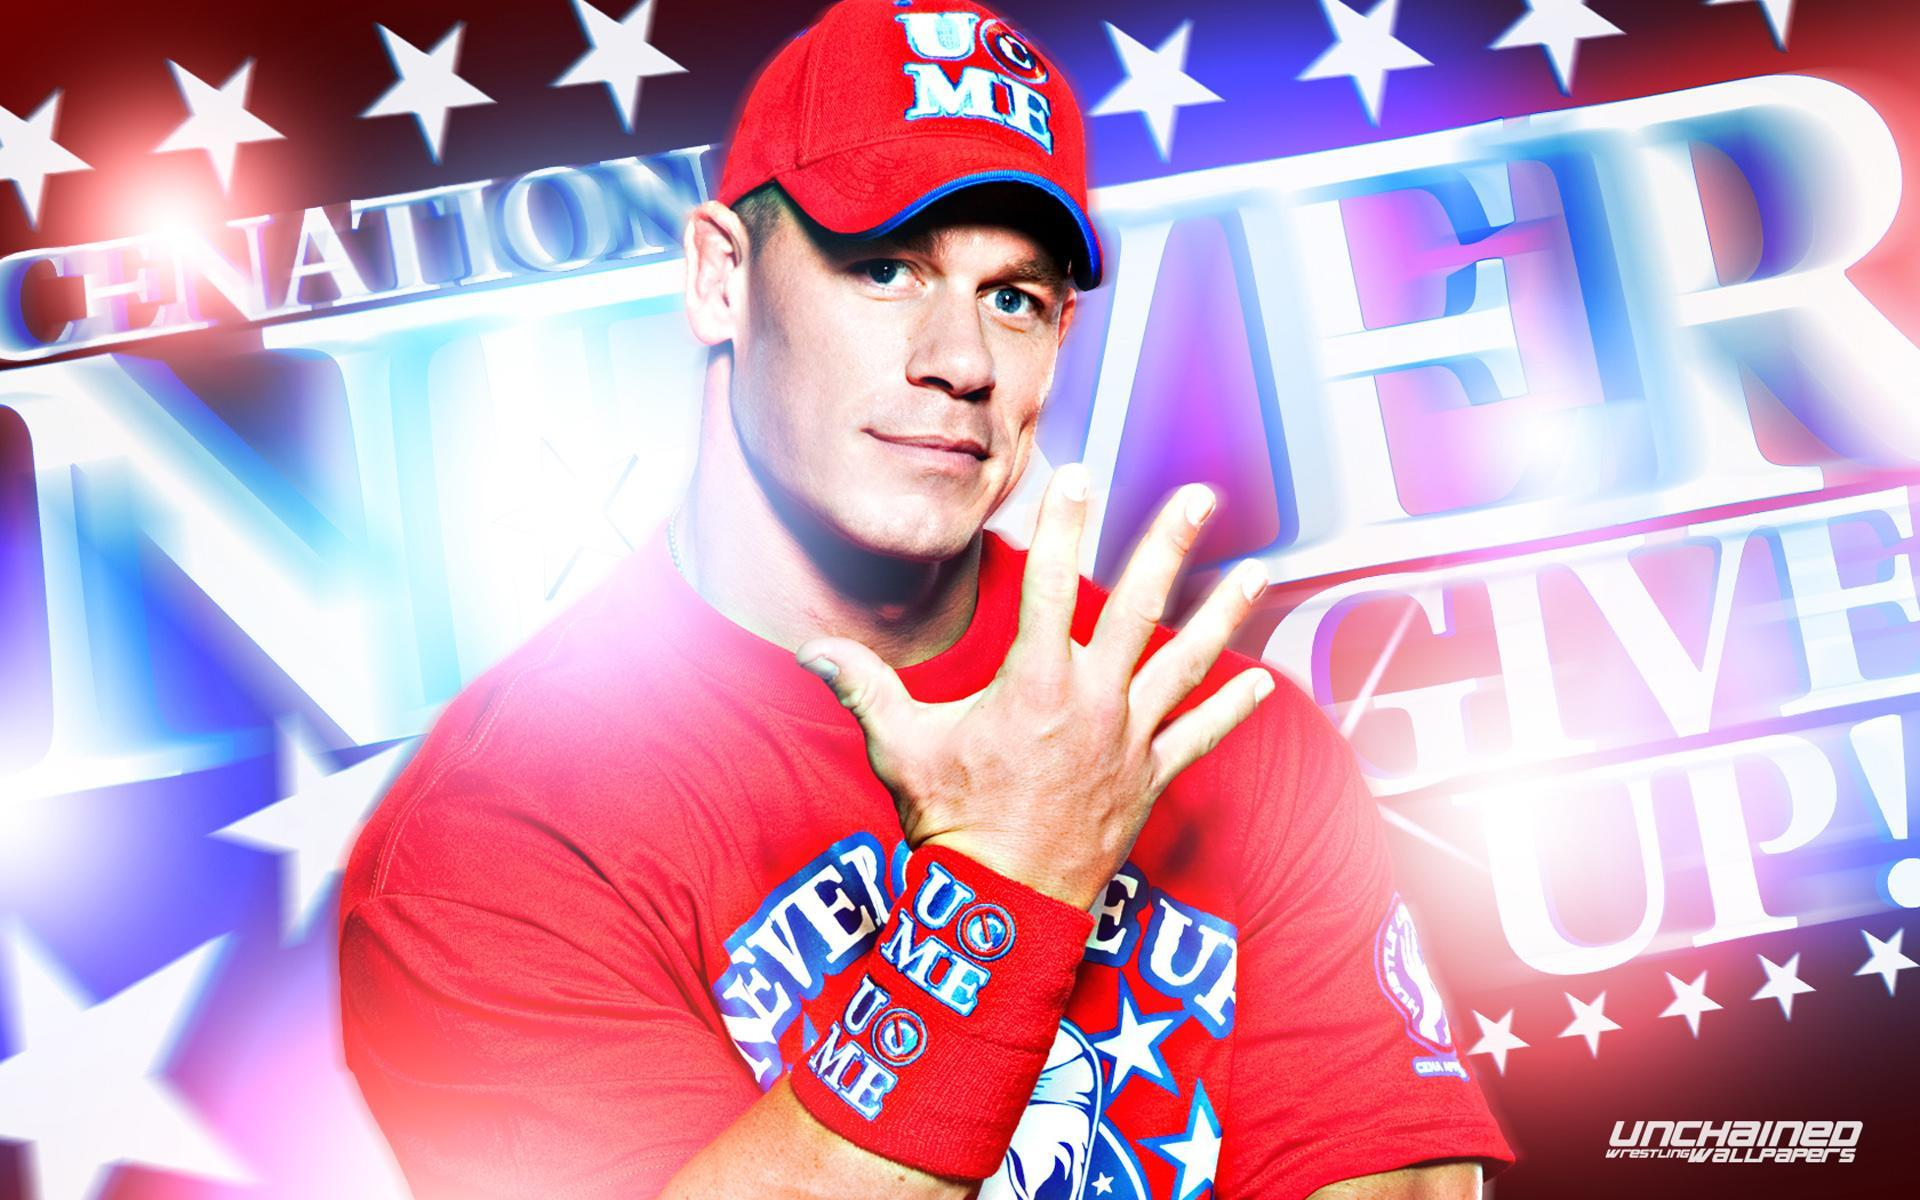 John Cena Wallpapers Pictures Images